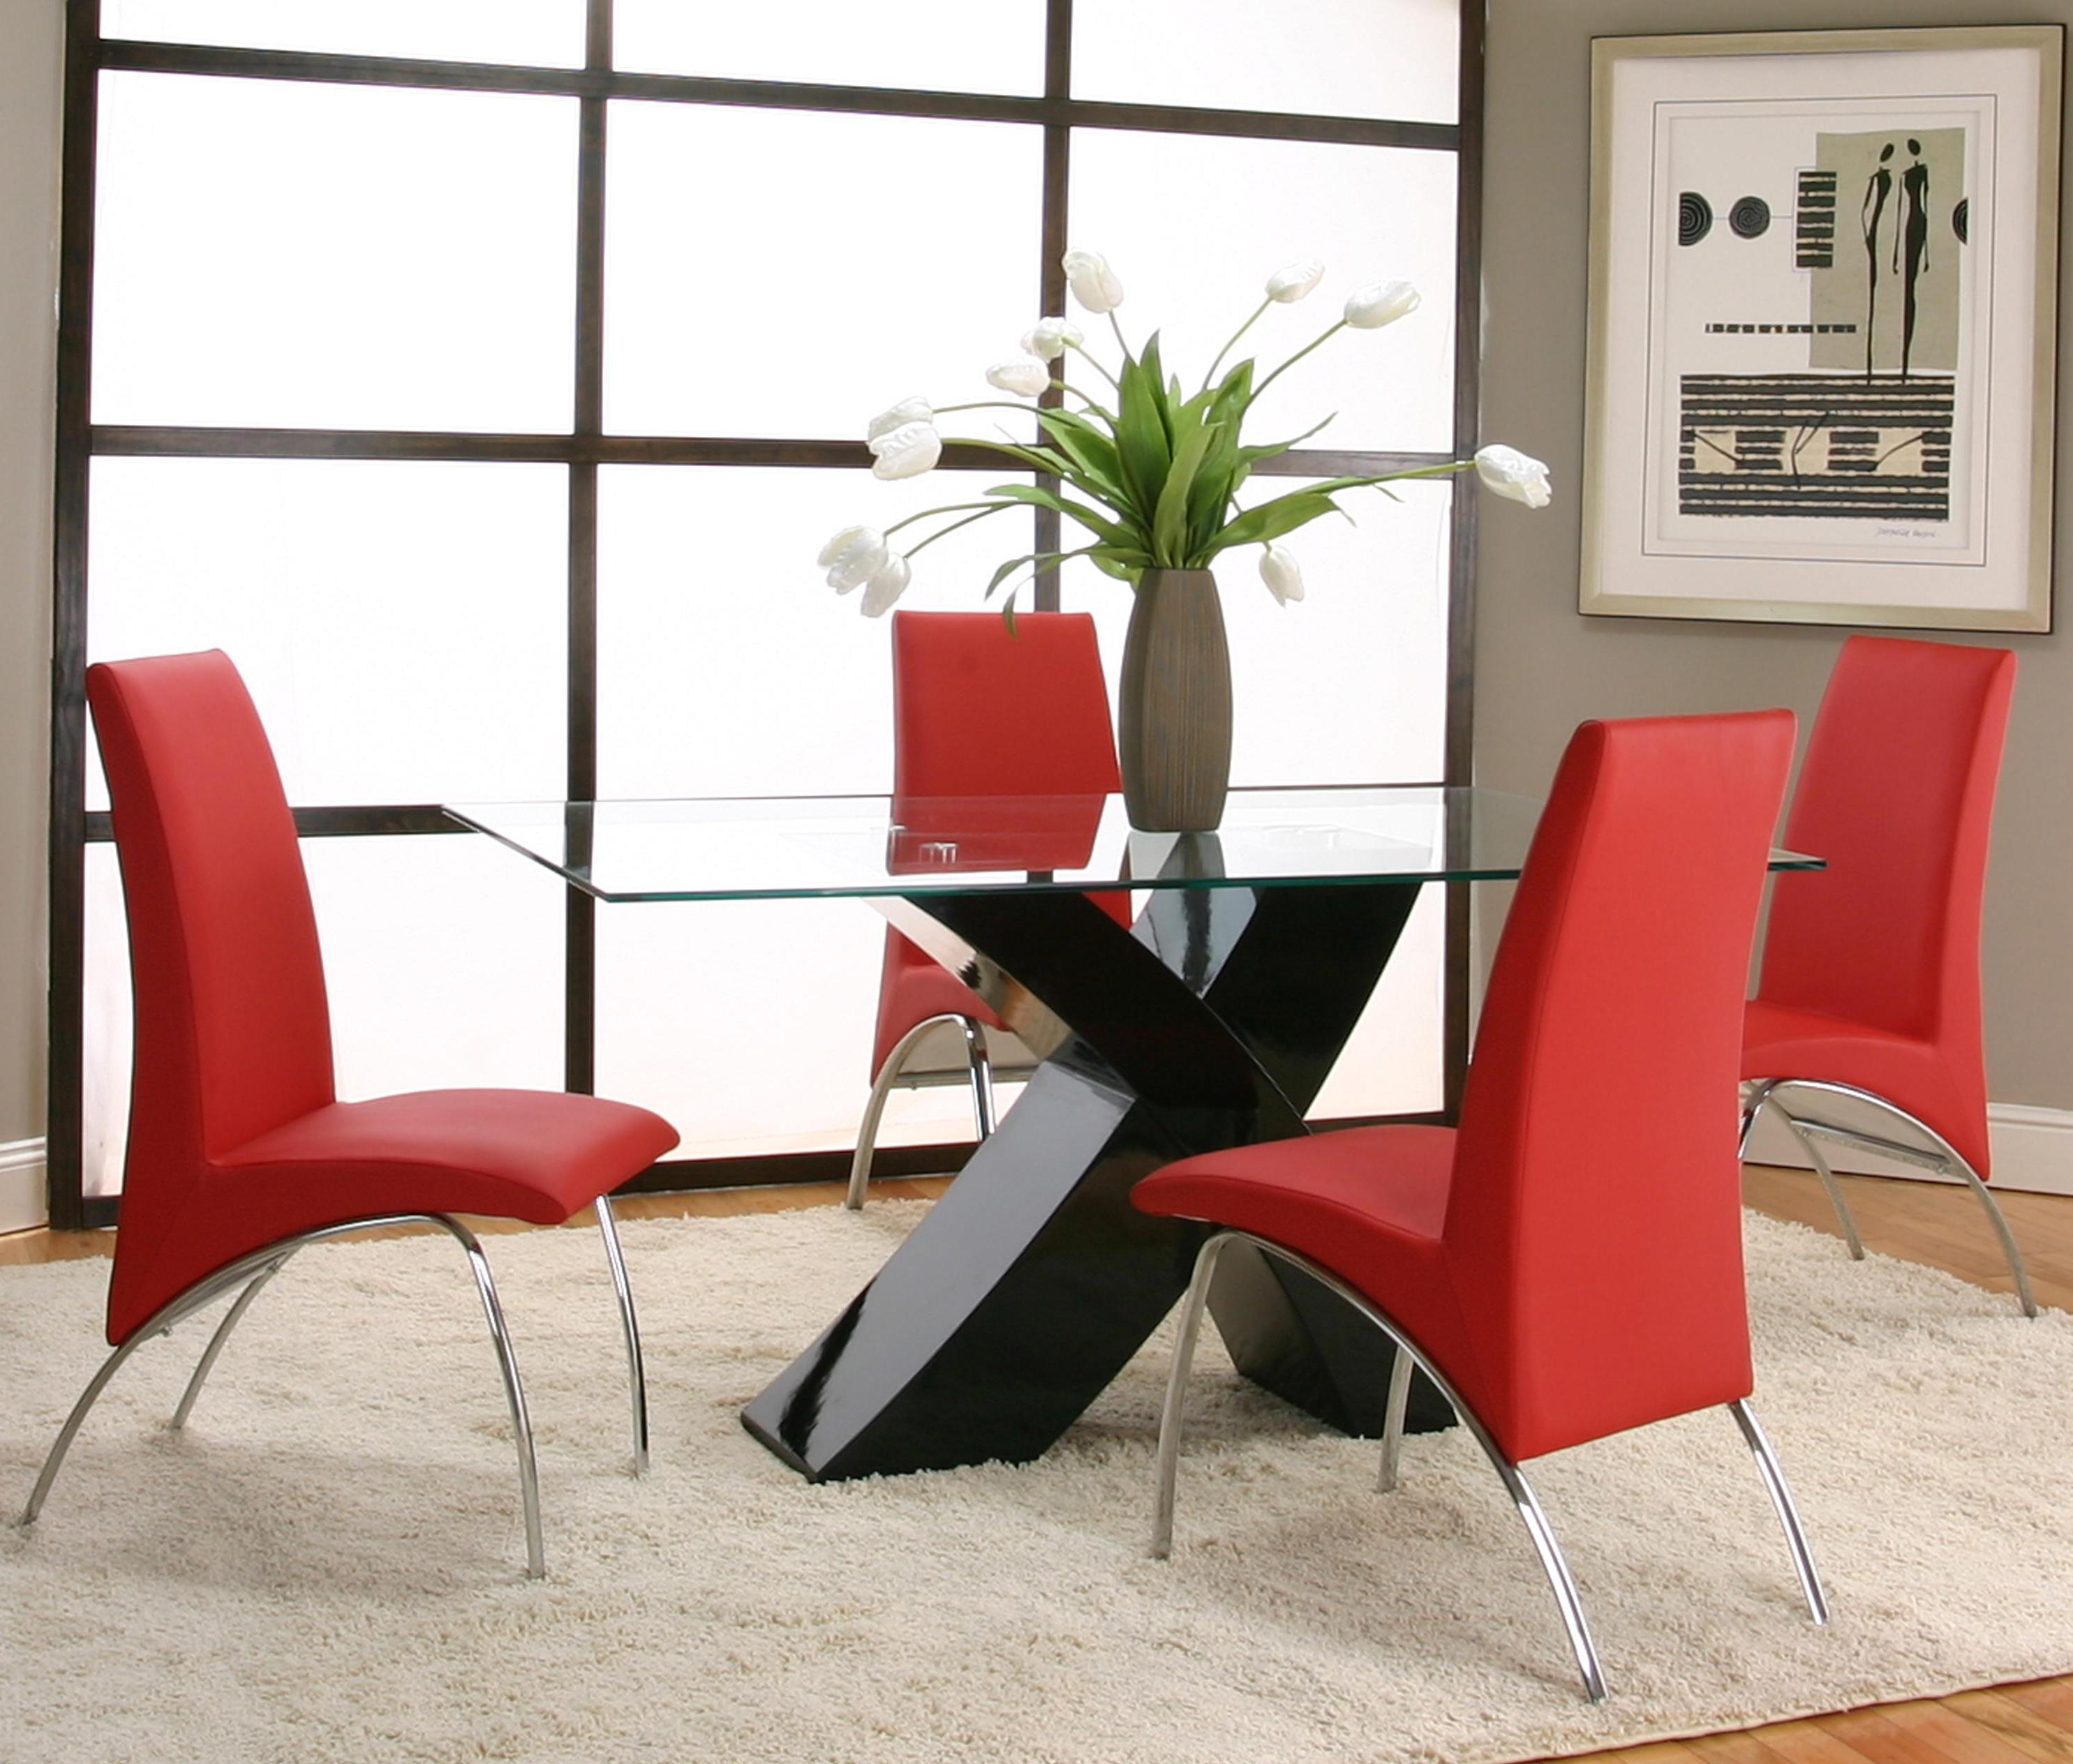 5 Piece Rectangular Glass Top Table with Black Base and Red Chairs ...